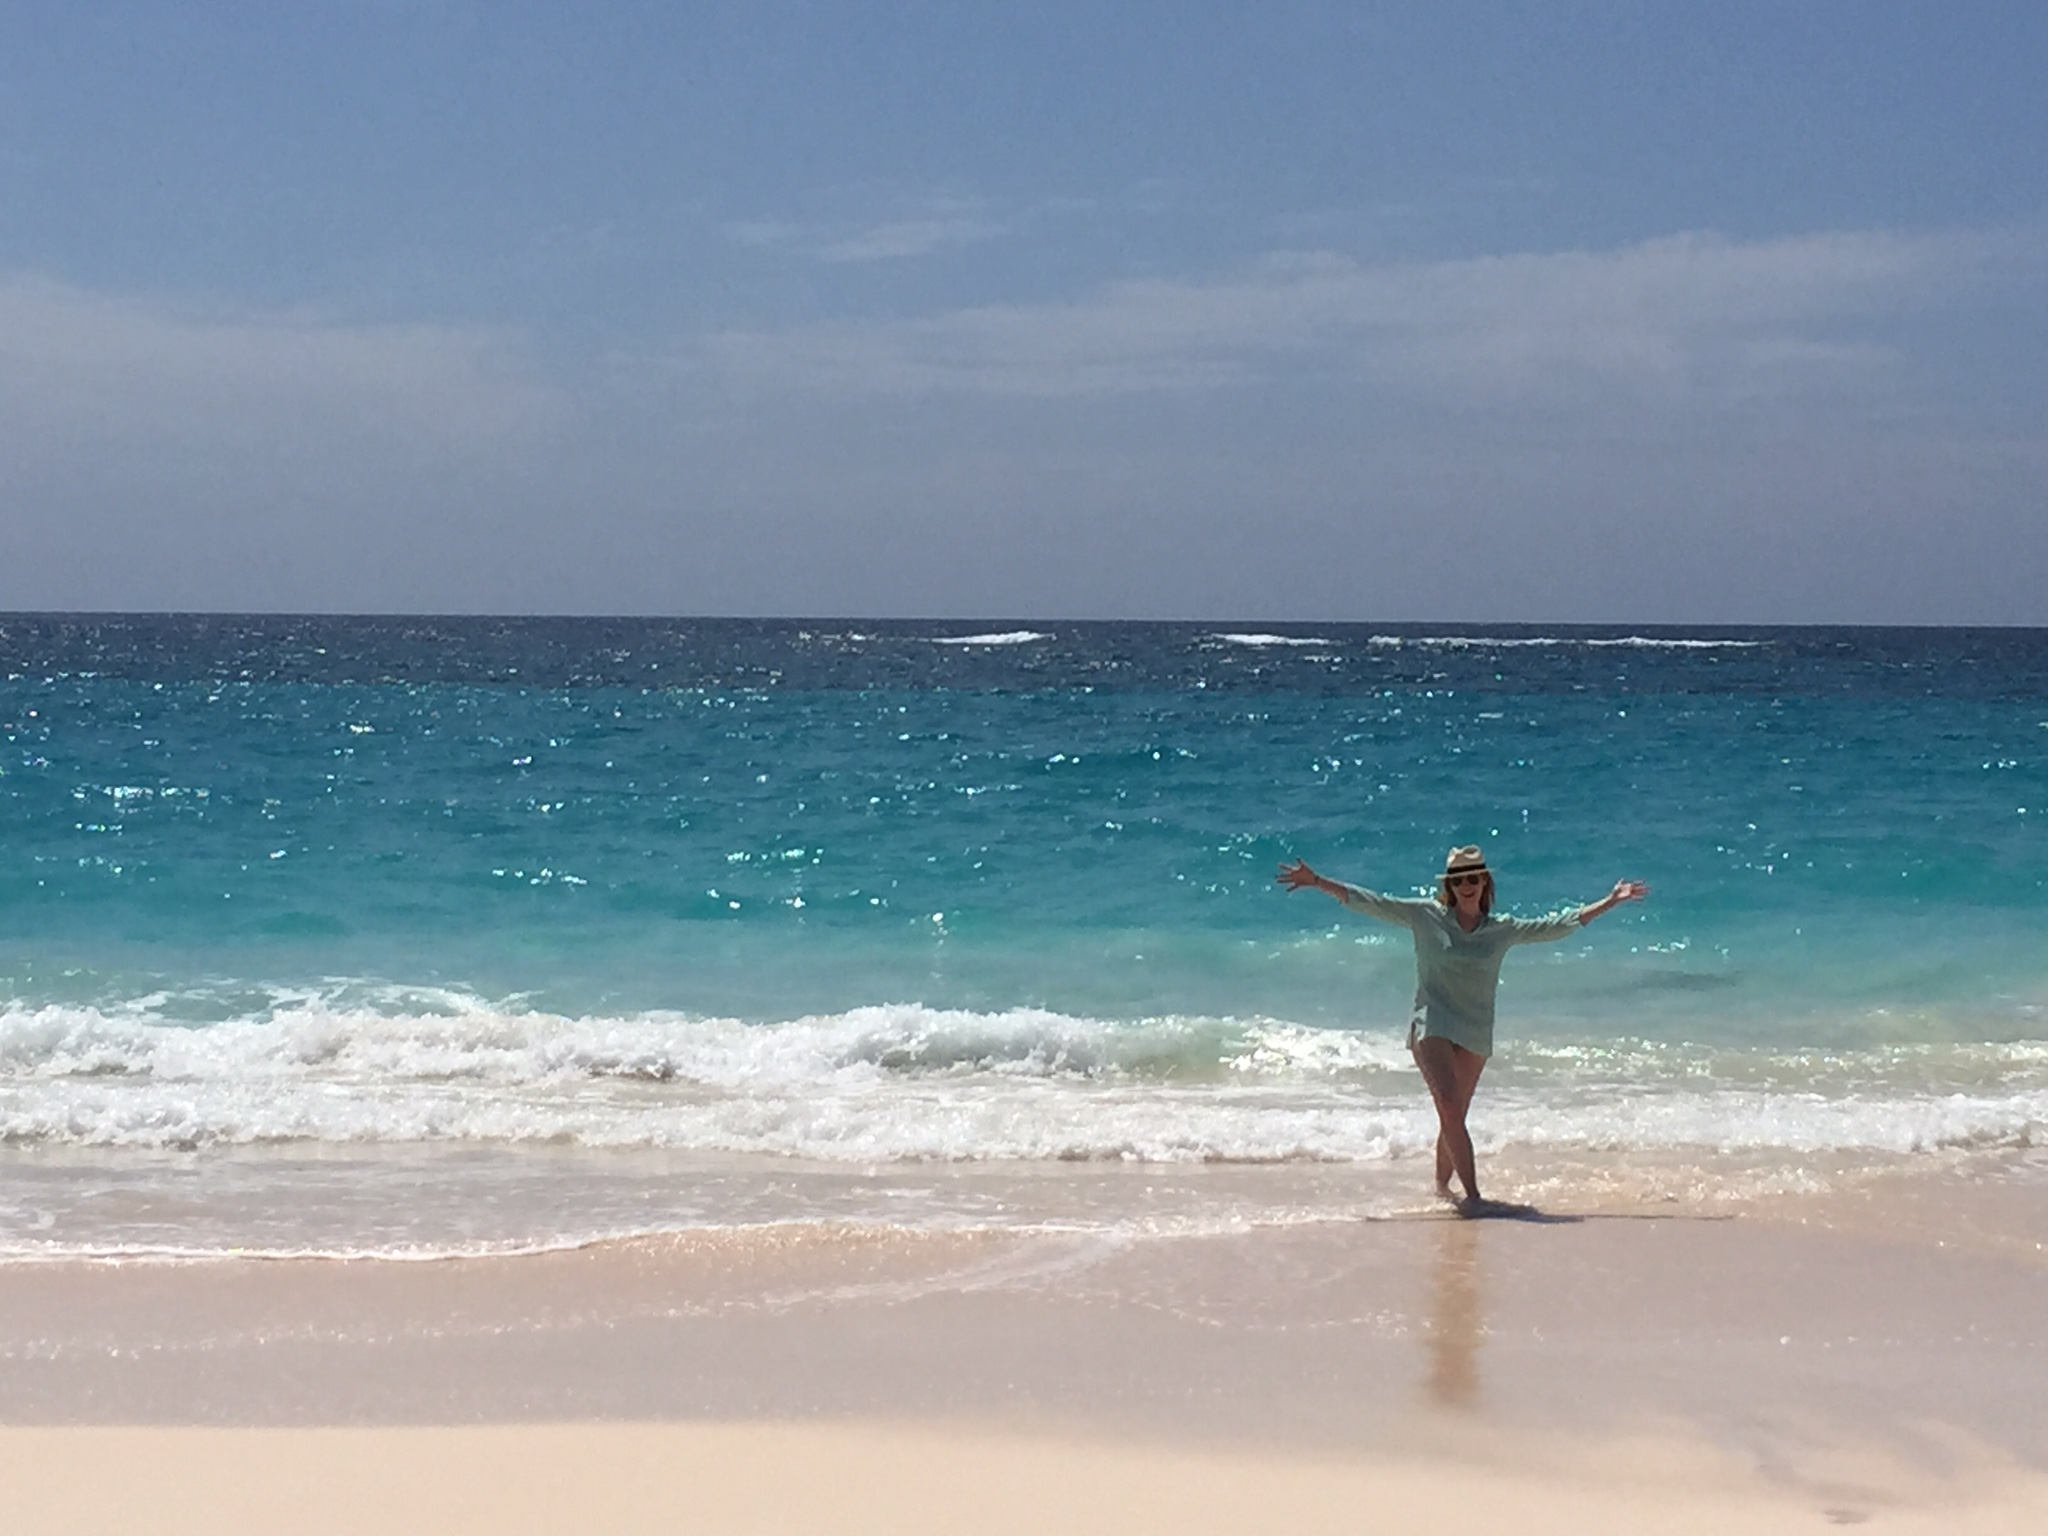 Enjoy your trip knowing your travel advisor has your back, like this Brownell Traveler at Elbow Beach in Bermuda.